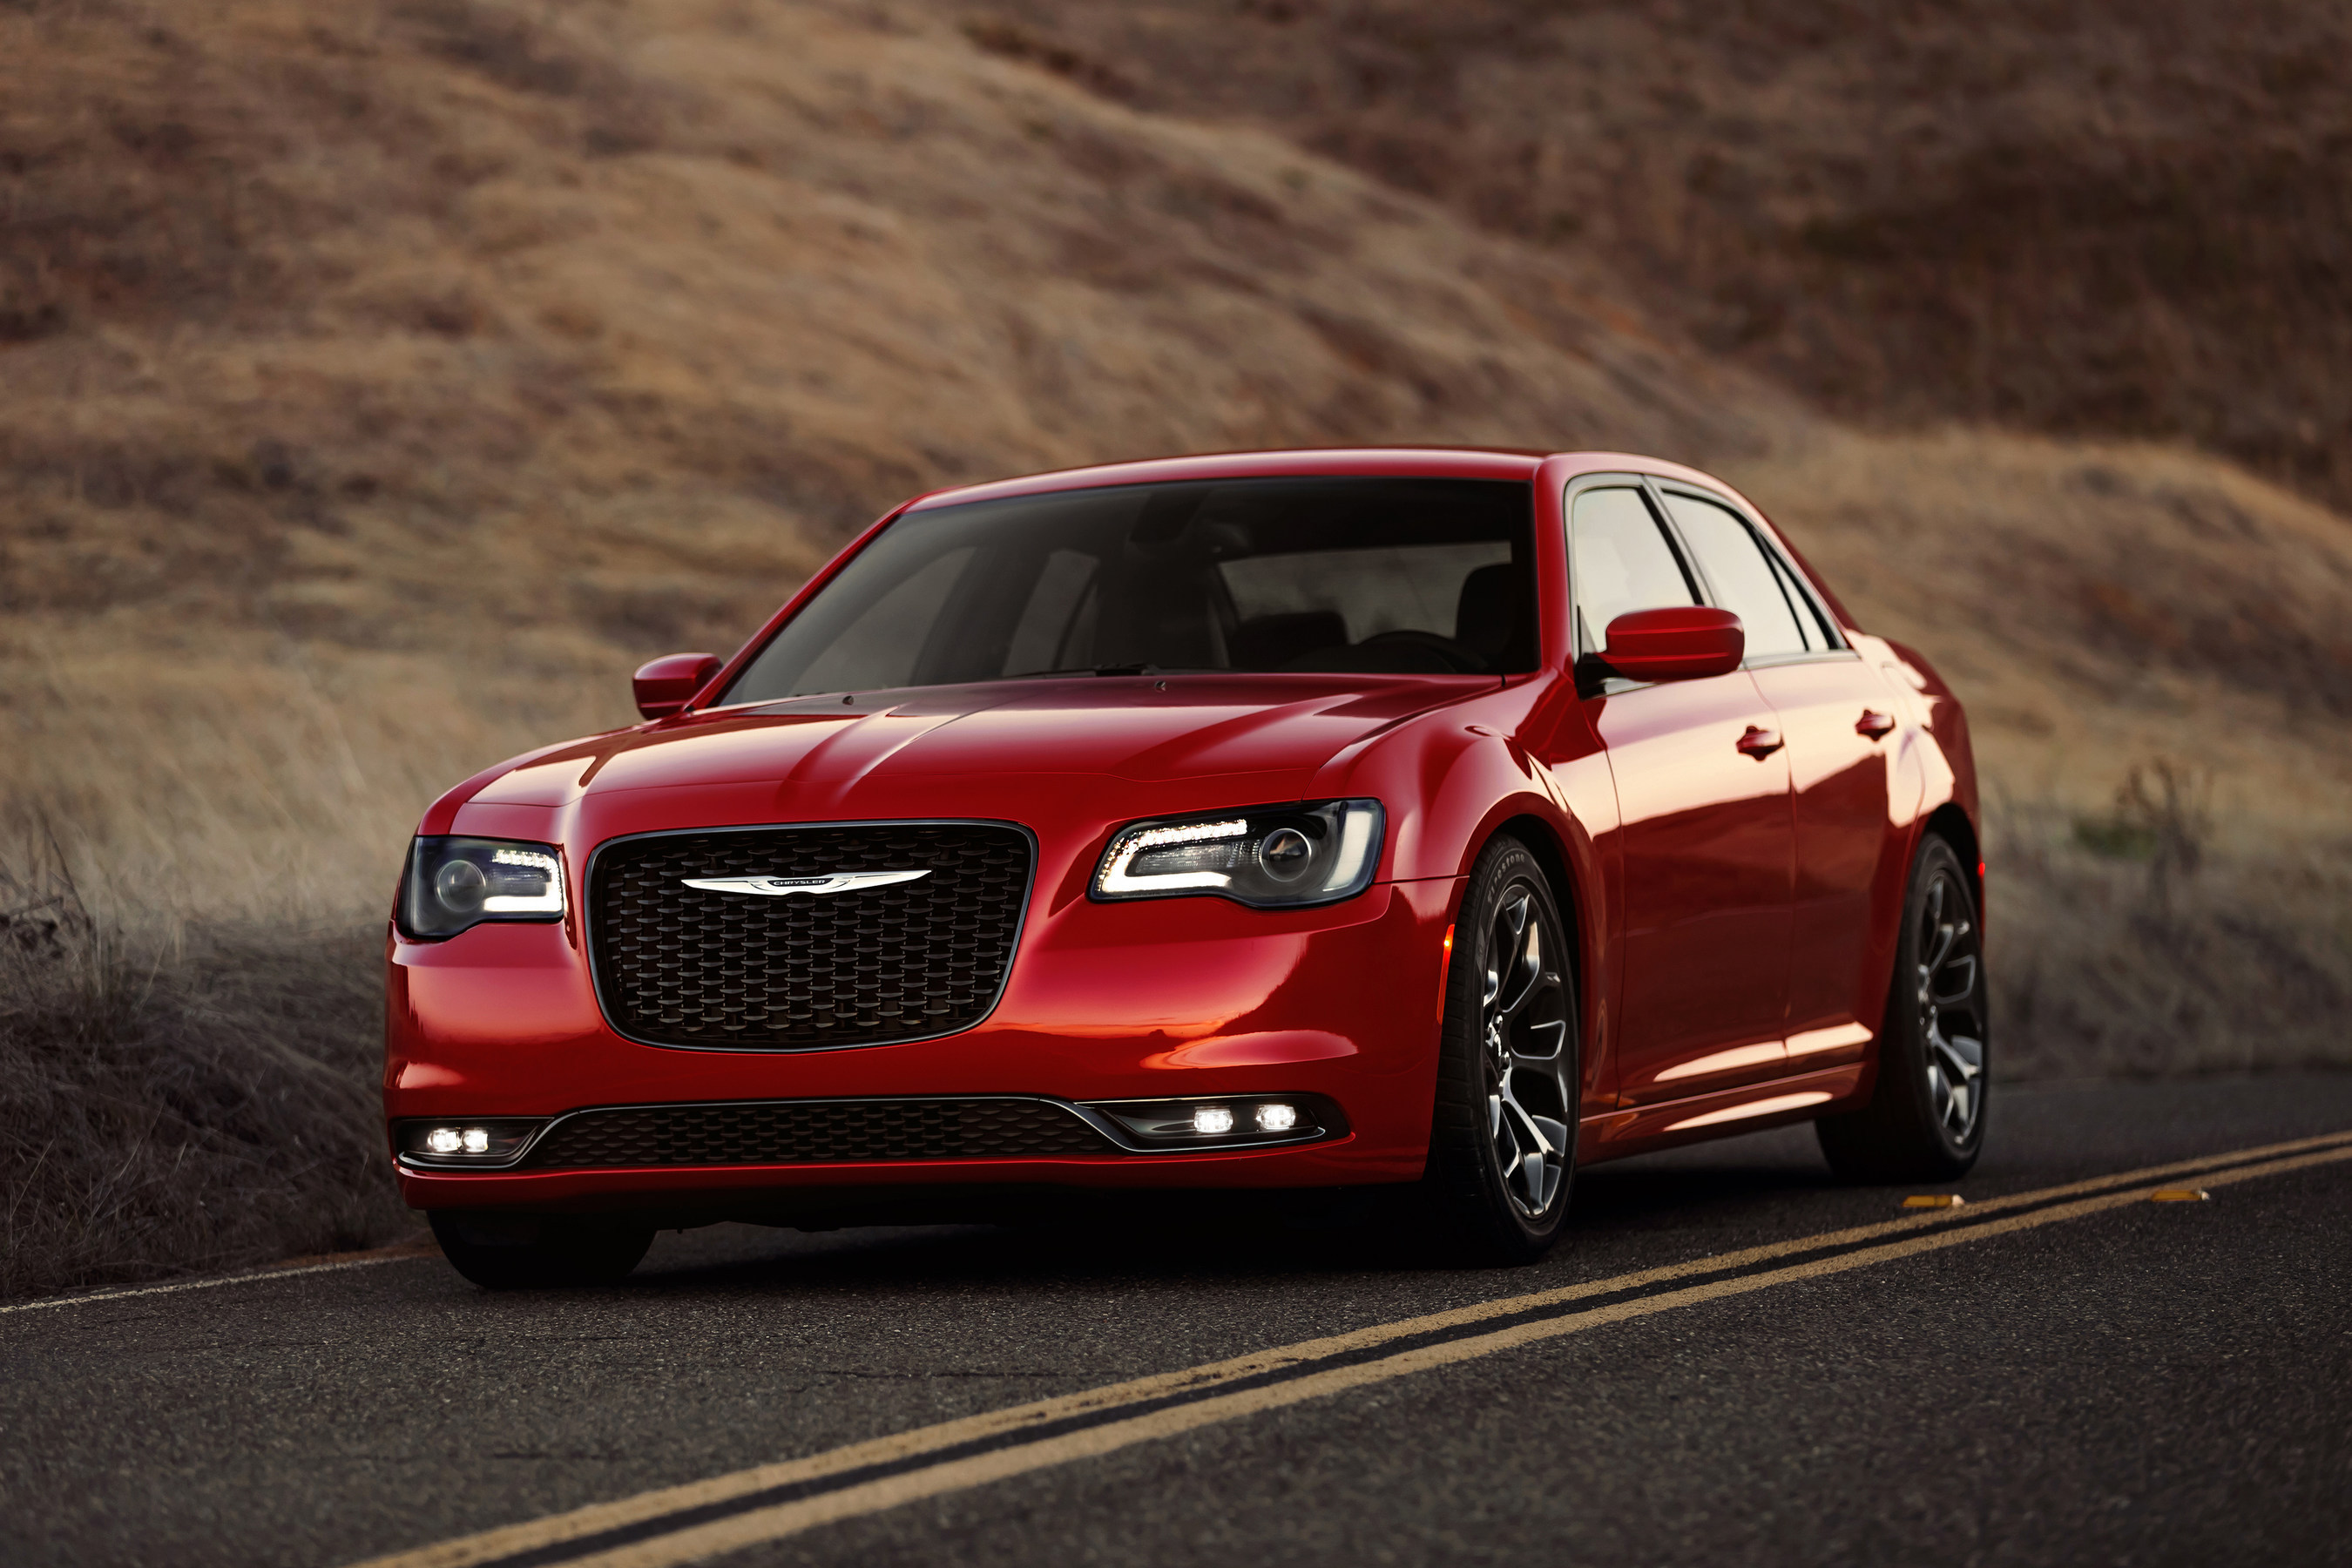 Chrysler C300: American business sedan and its technical specifications